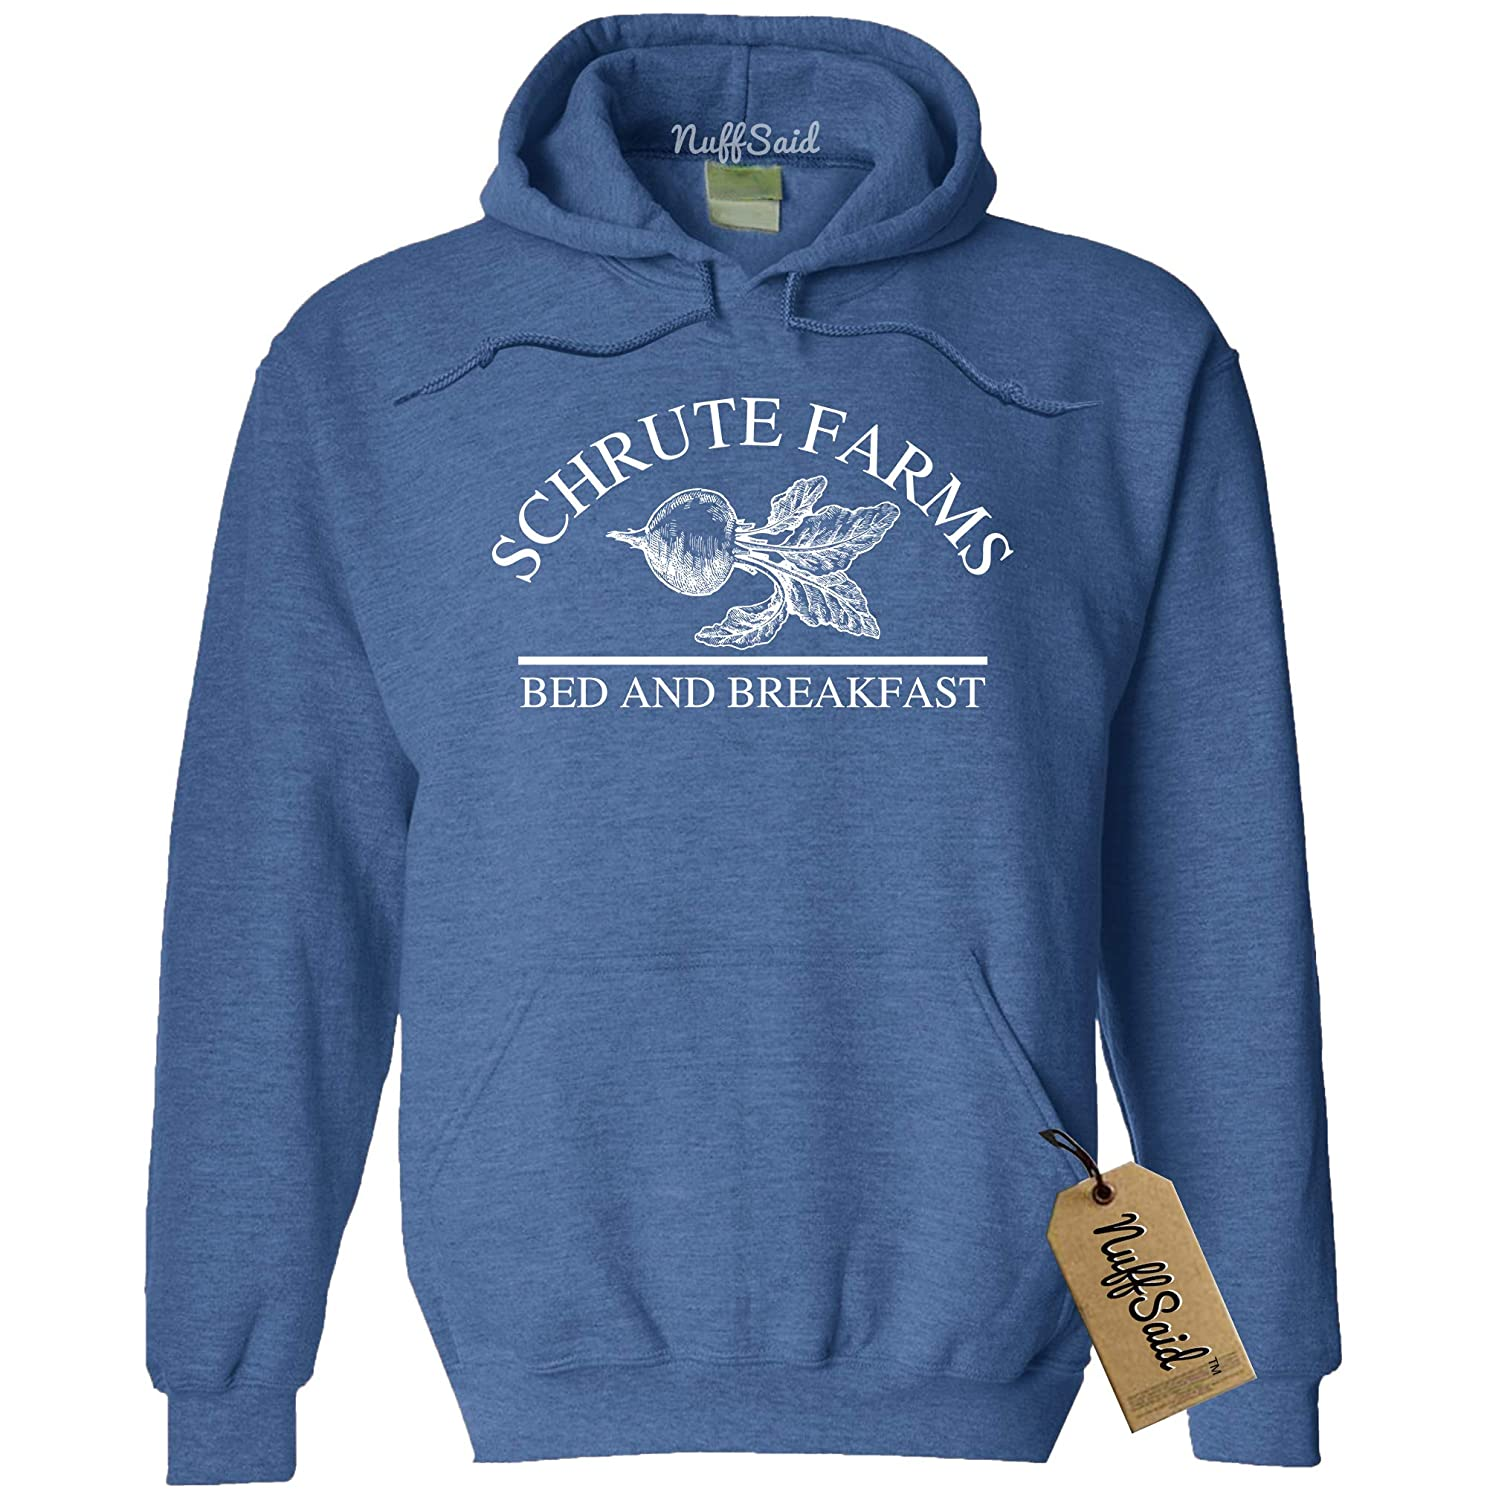 Unisex Hoodie NuffSaid Schrute Farms Beets Bed and Breakfast Hooded Sweatshirt Sweater Pullover